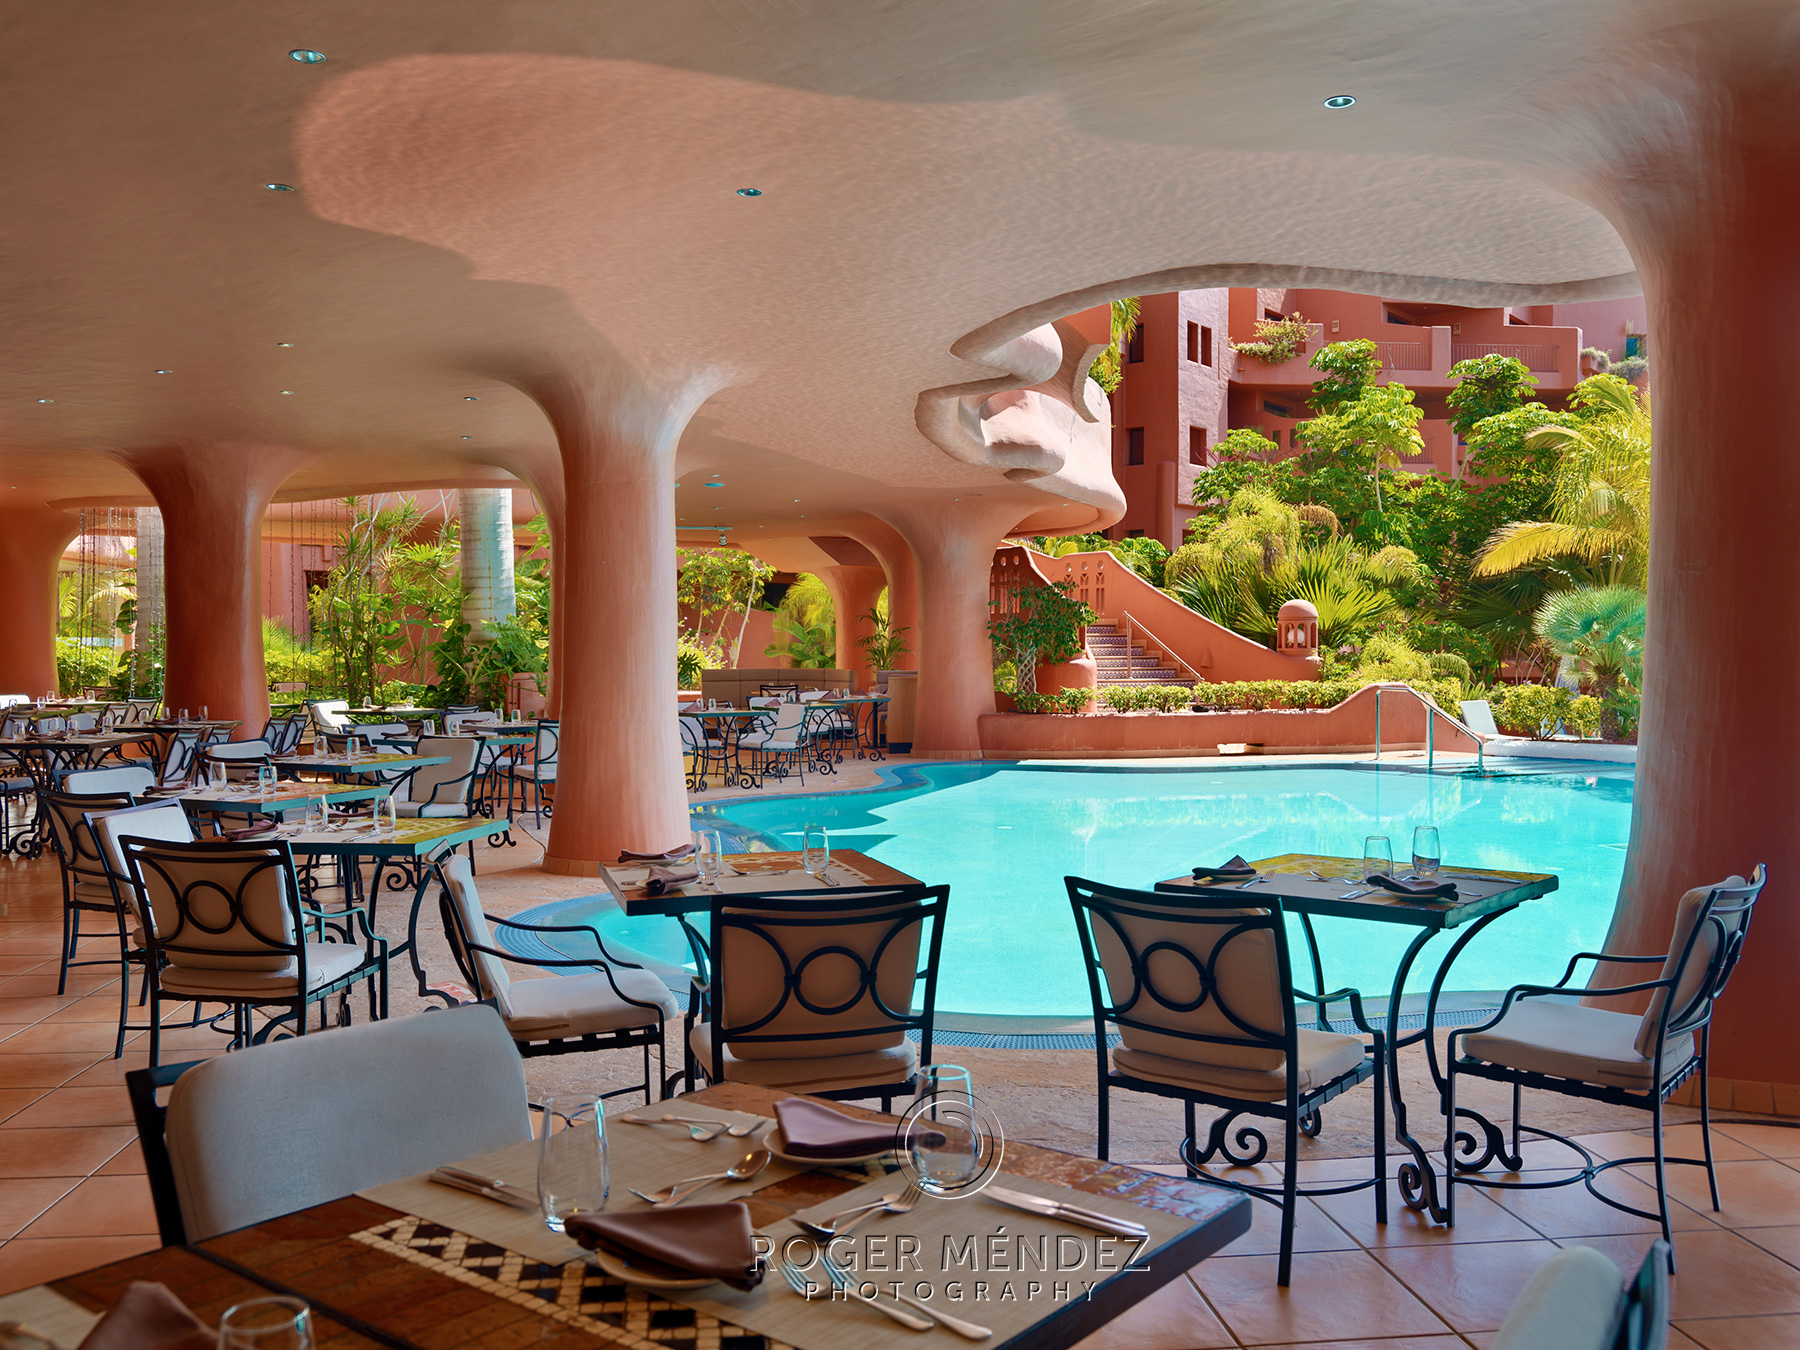 El parador restaurant. Exterior with pool view. Sheraton La Caleta photos